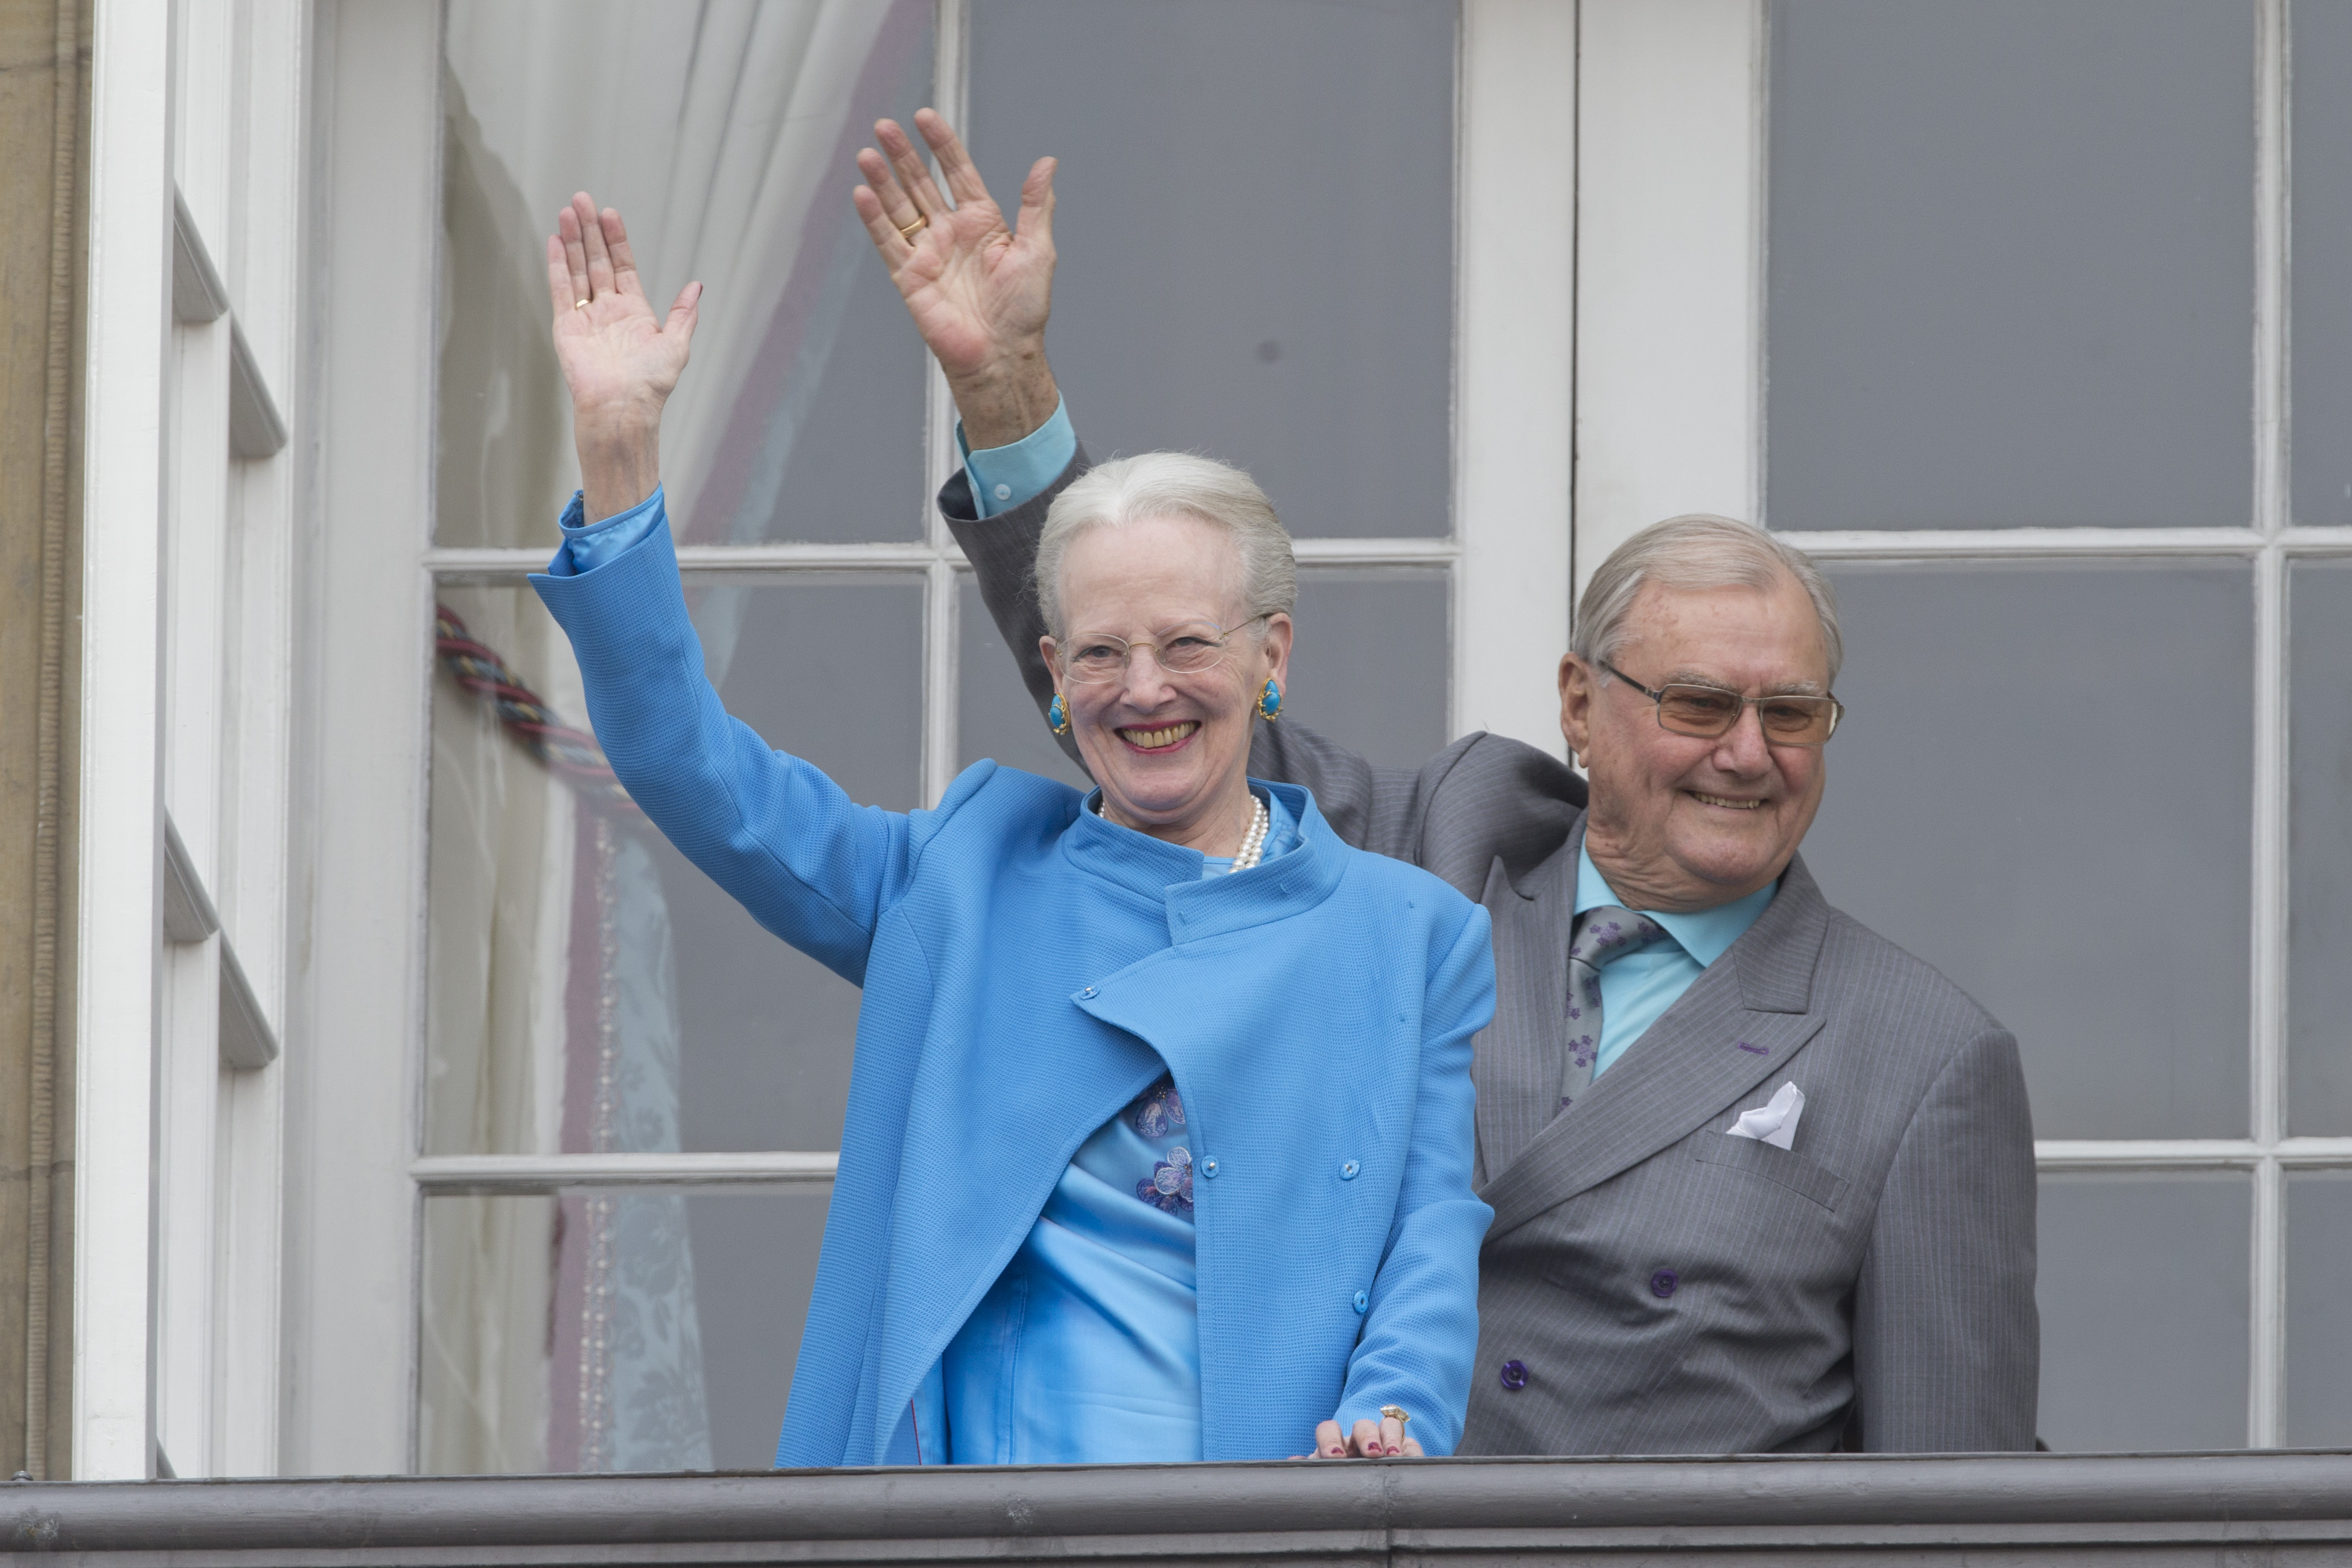 Queen Margrethe II of Denmark and Prince Henrik of Denmark attend Queen Margrethe's 76th Birthday Celebration at Amalienborg Palace on April 16, 2016.